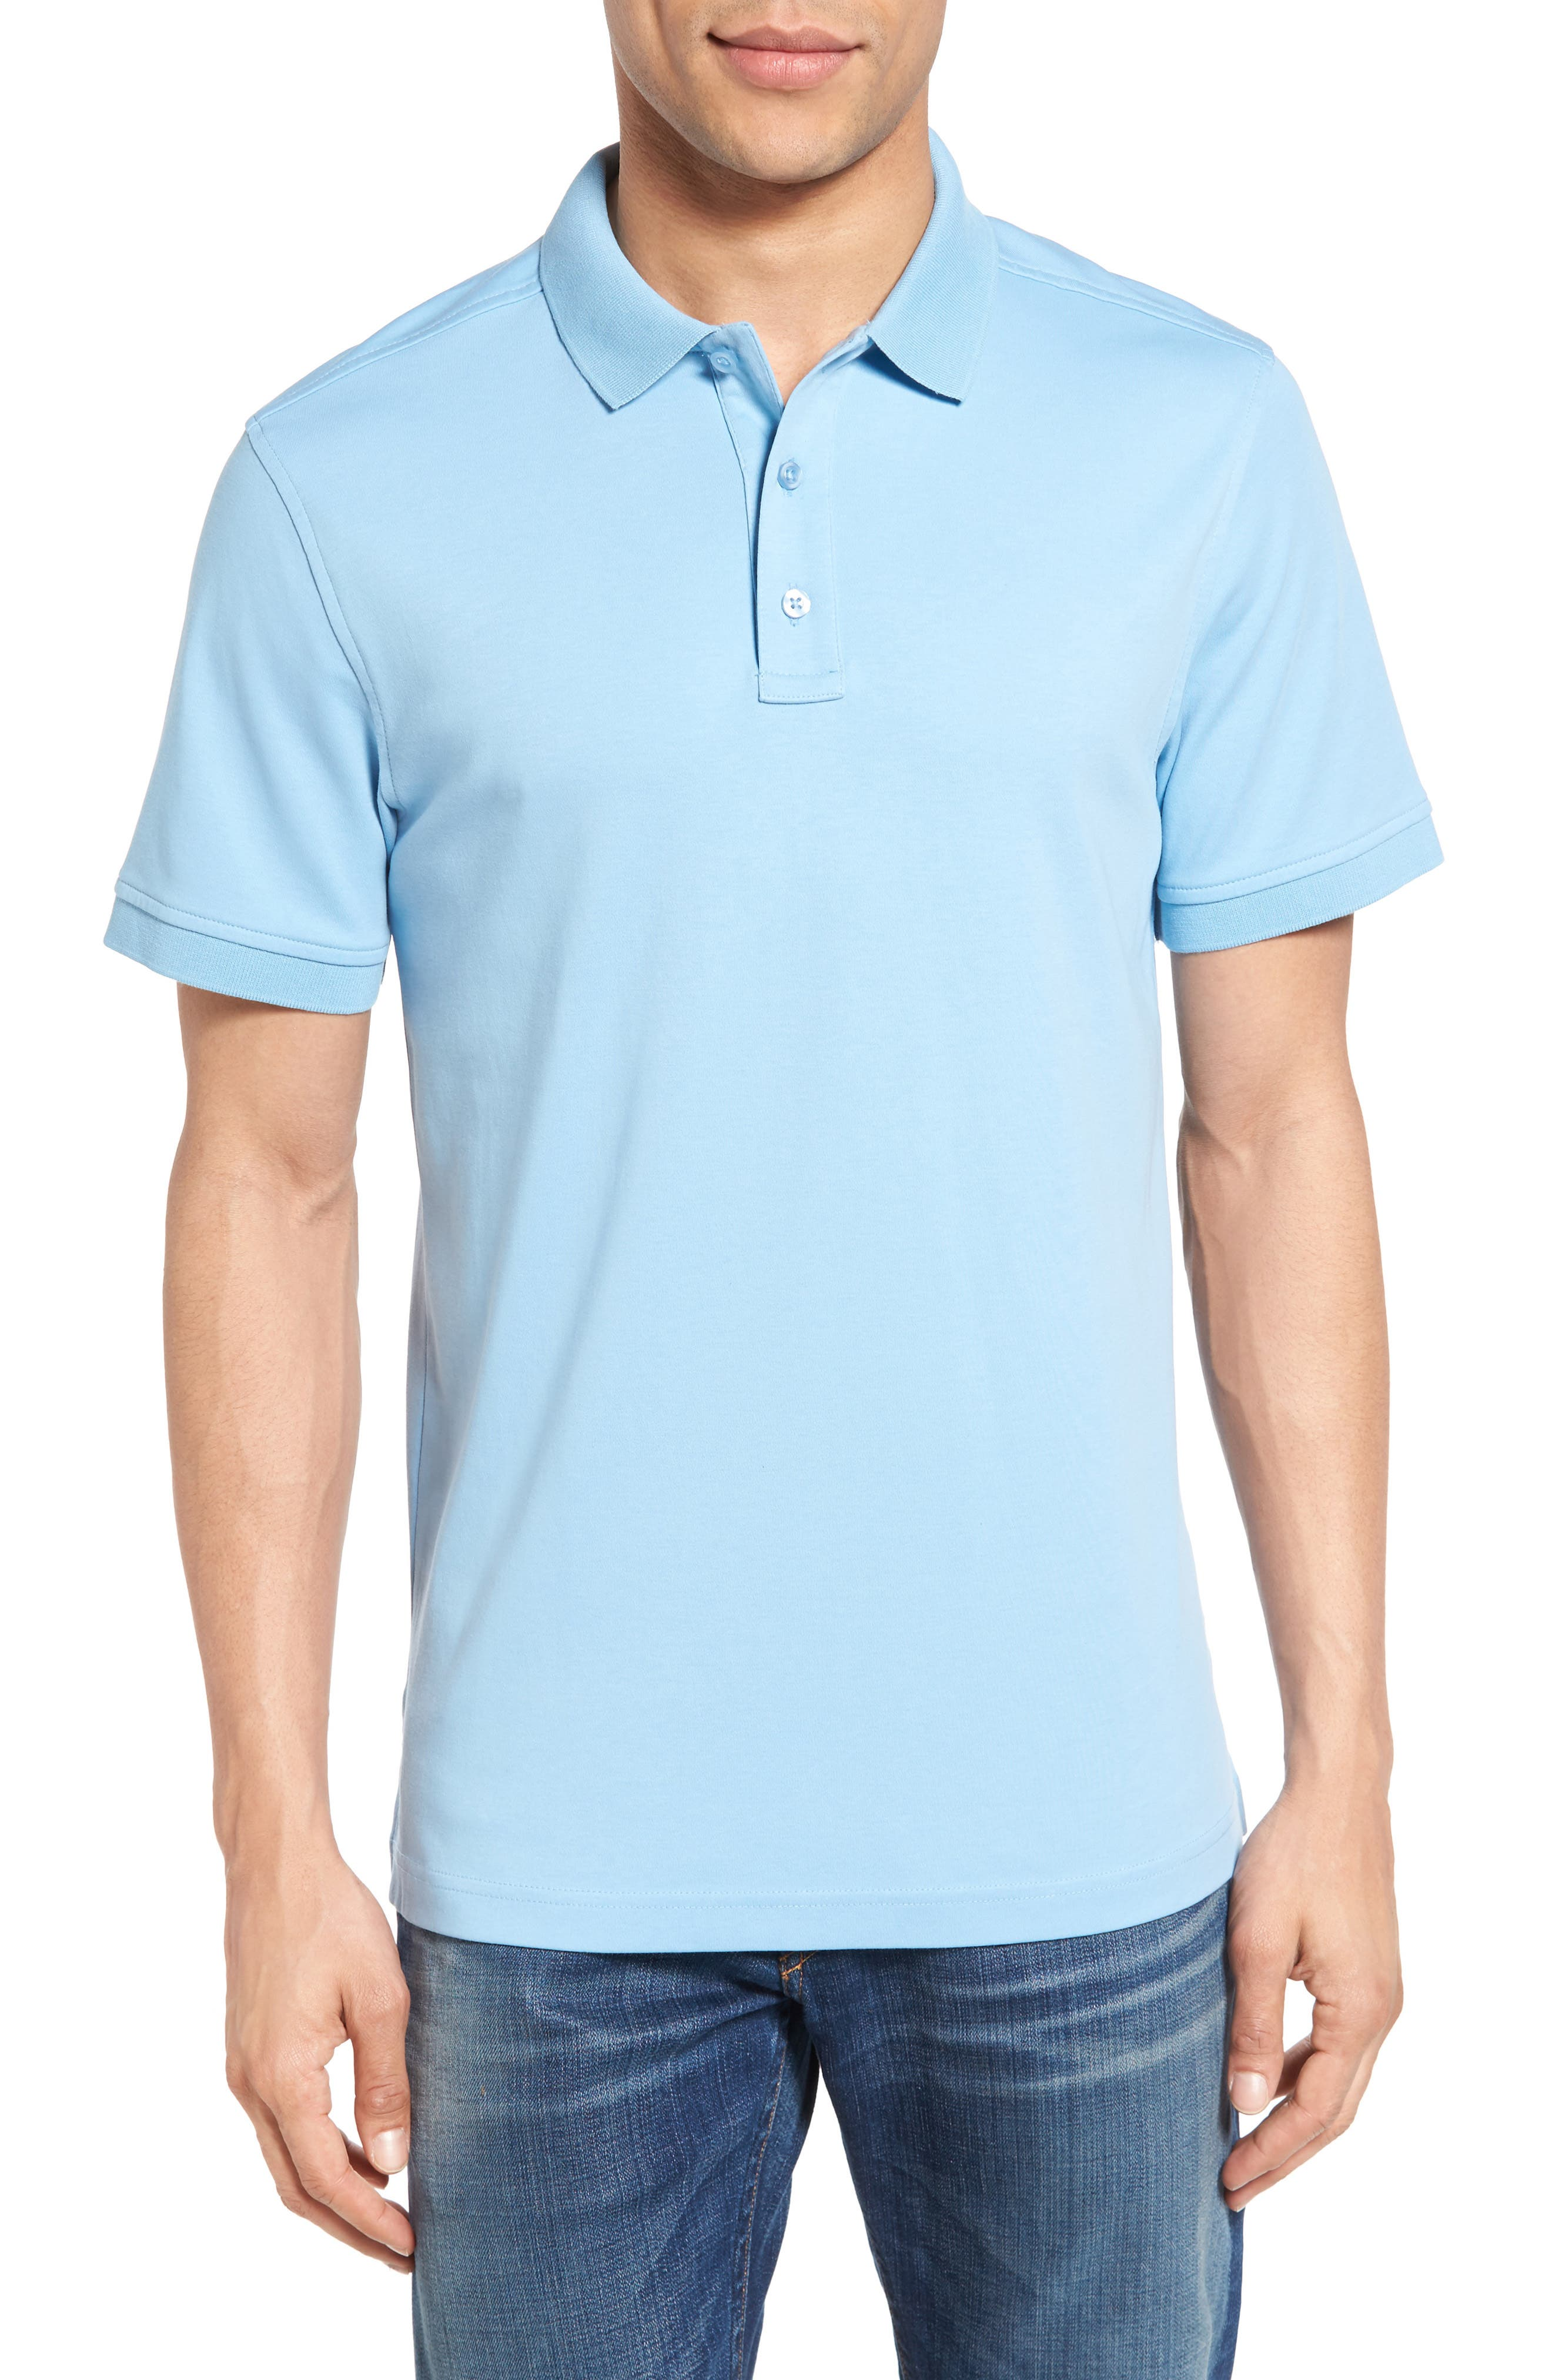 NORDSTROM MENS SHOP Slim Fit Interlock Knit Polo